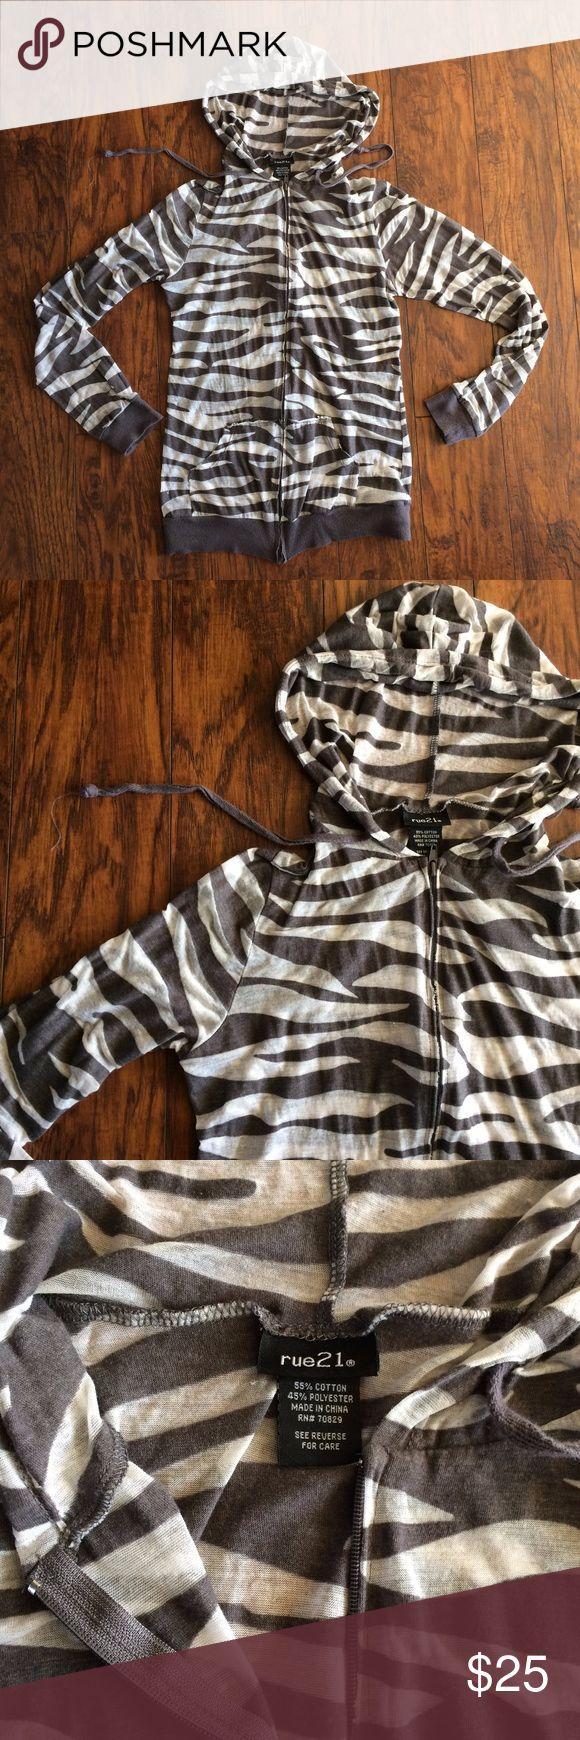 Zebra Print Zip Up Small Hoodie Jacket cute zebra ( animal print ) zip up hoodie jacket in size small from Rue 21 Rue 21 Tops